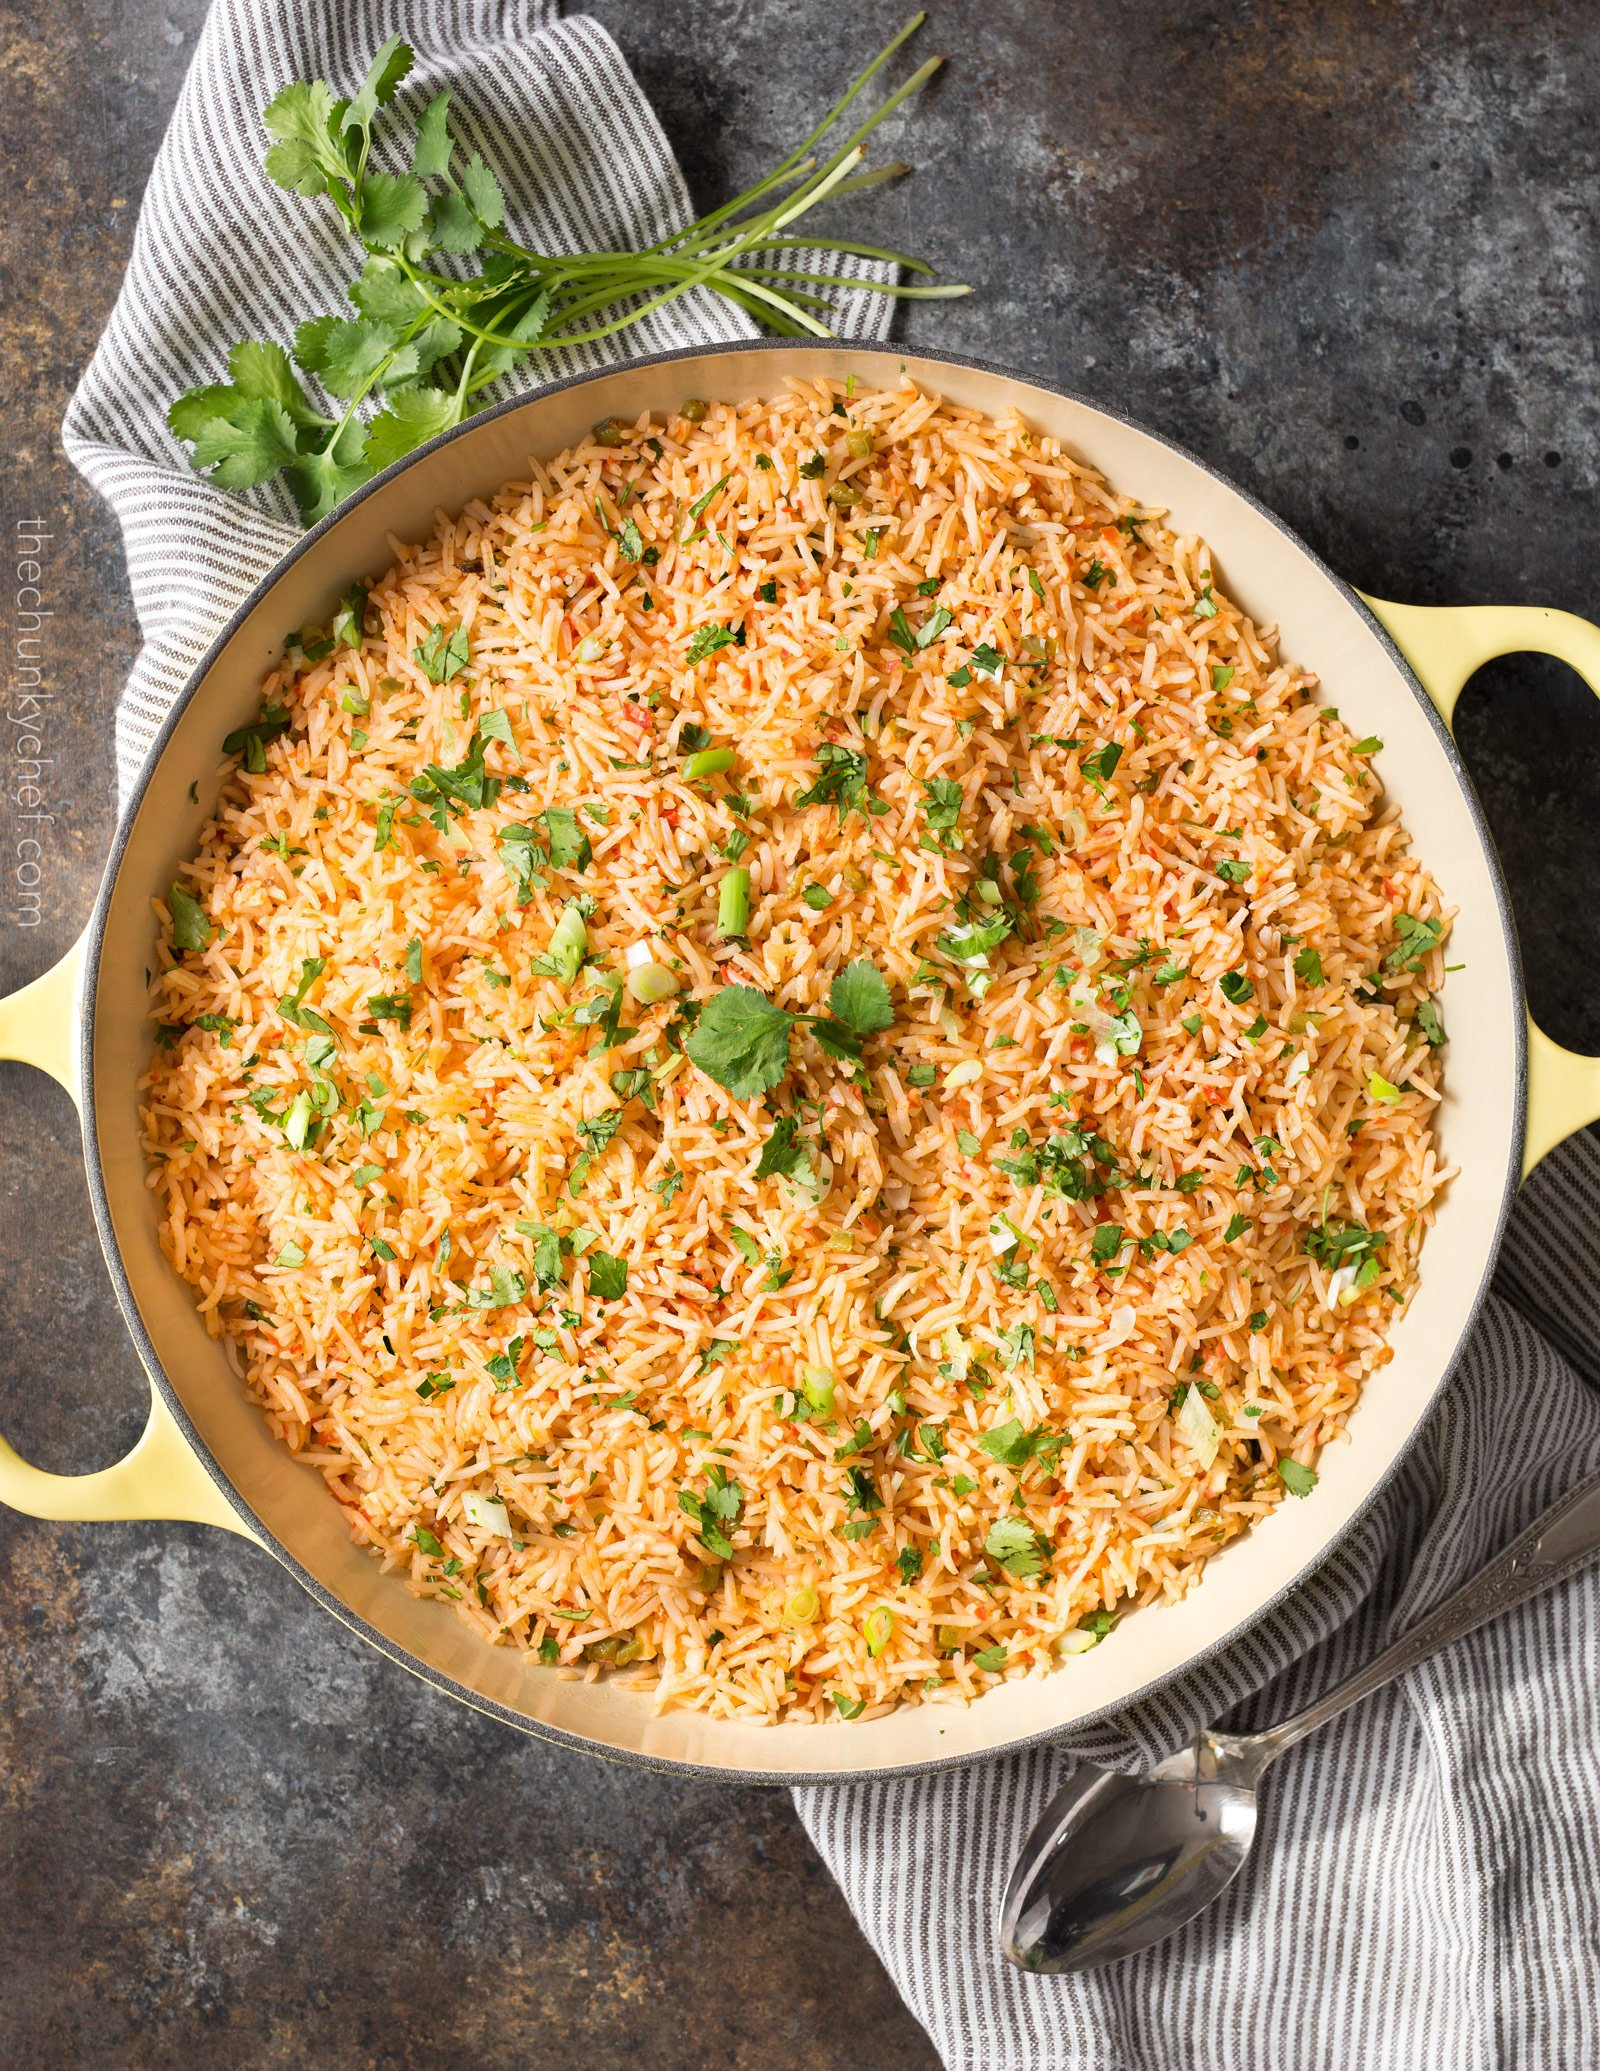 Easy Baked Mexican Rice | This foolproof method for cooking rice tastes just like the rice from your favorite Mexican restaurant... full of flavor and cooked to perfectly fluffy perfection! | http://thechunkychef.com